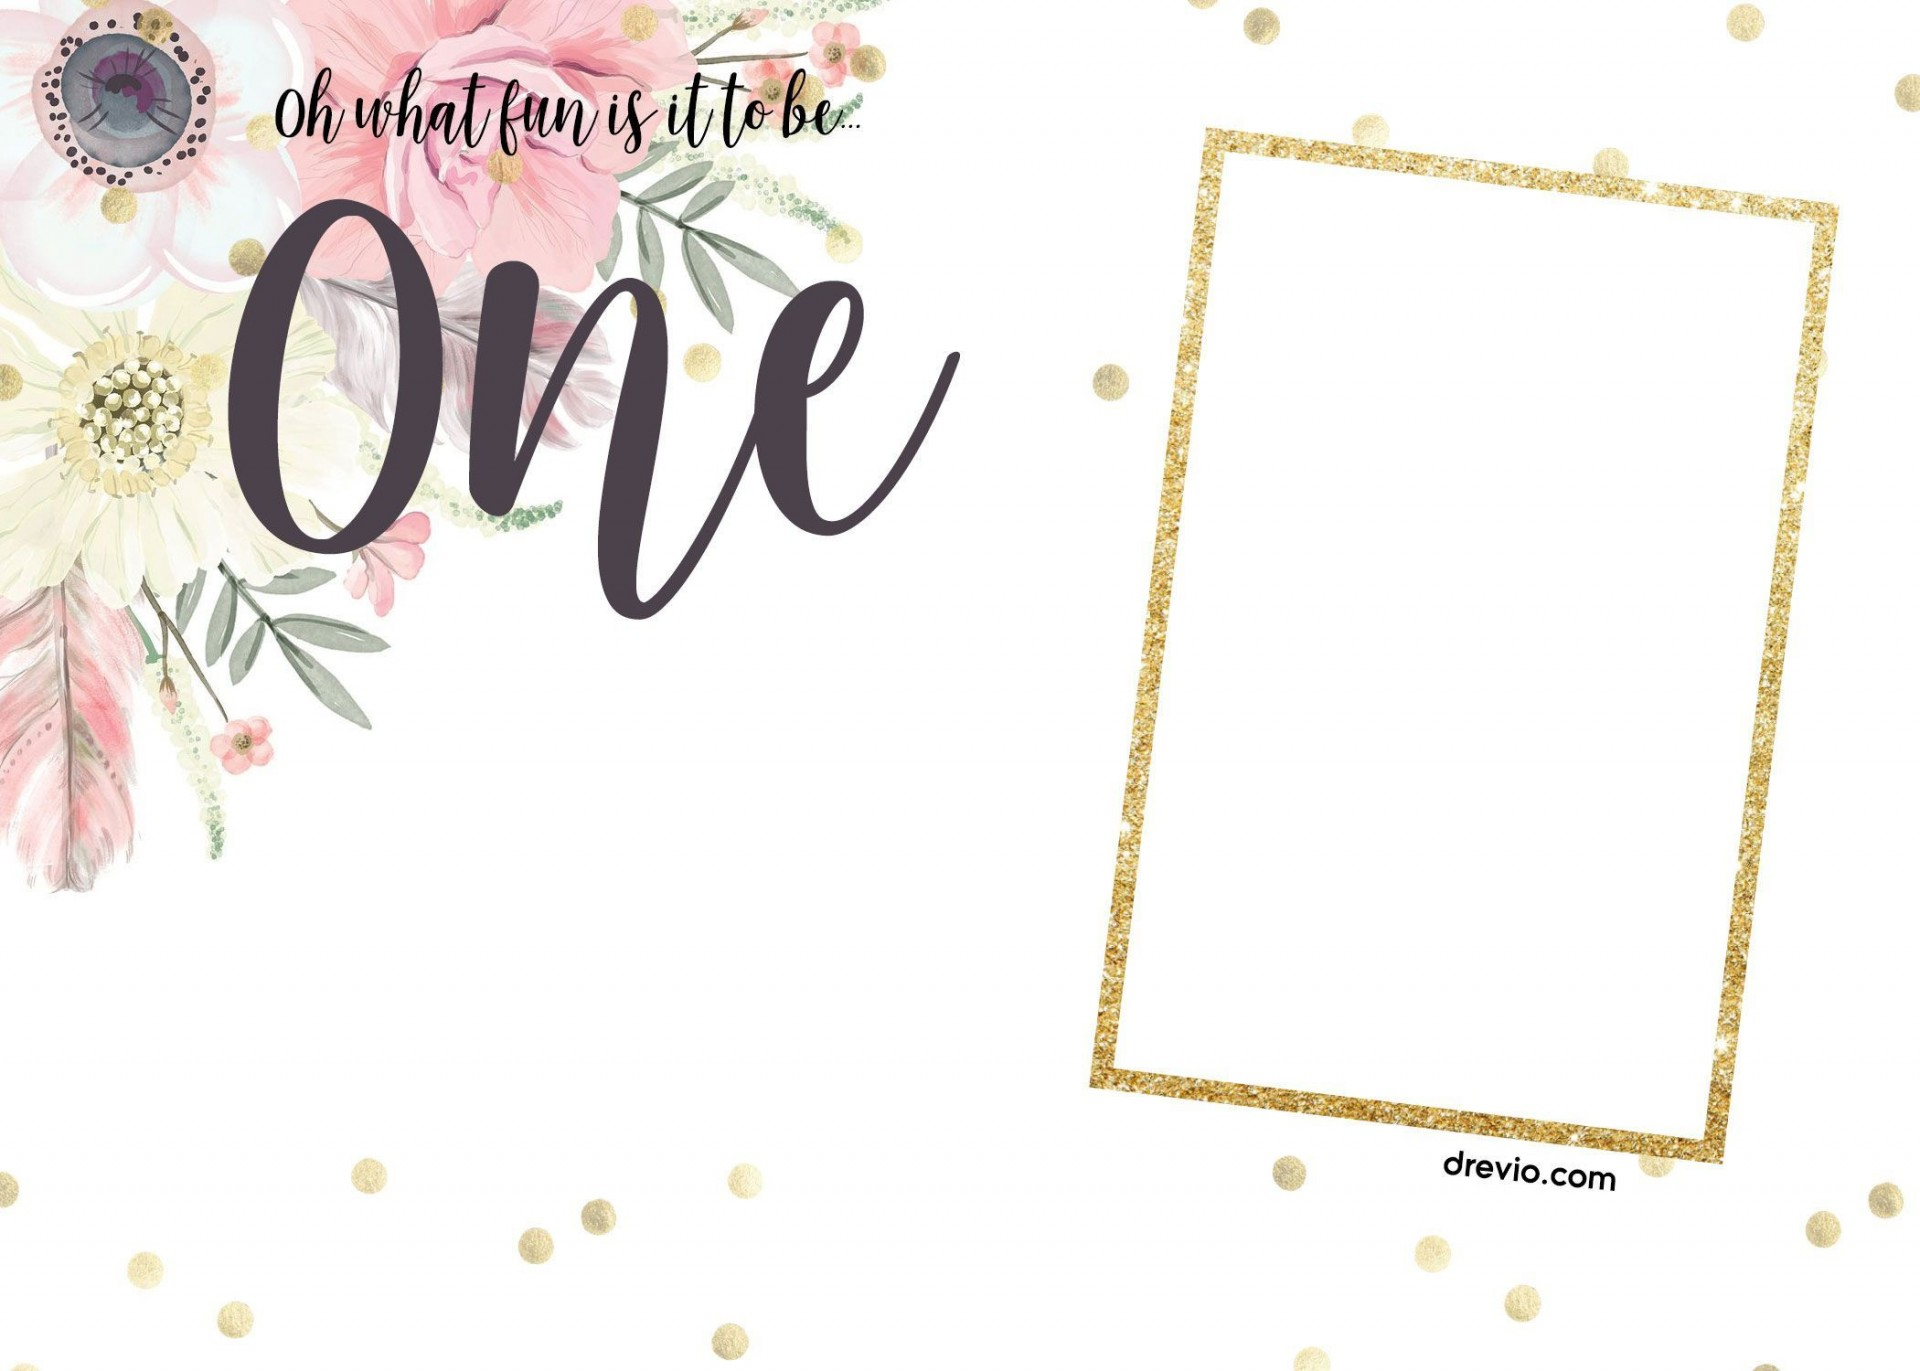 001 Unusual 1st Birthday Invitation Template Example  Background Design Blank For Girl First Baby Boy Free Download Indian1920